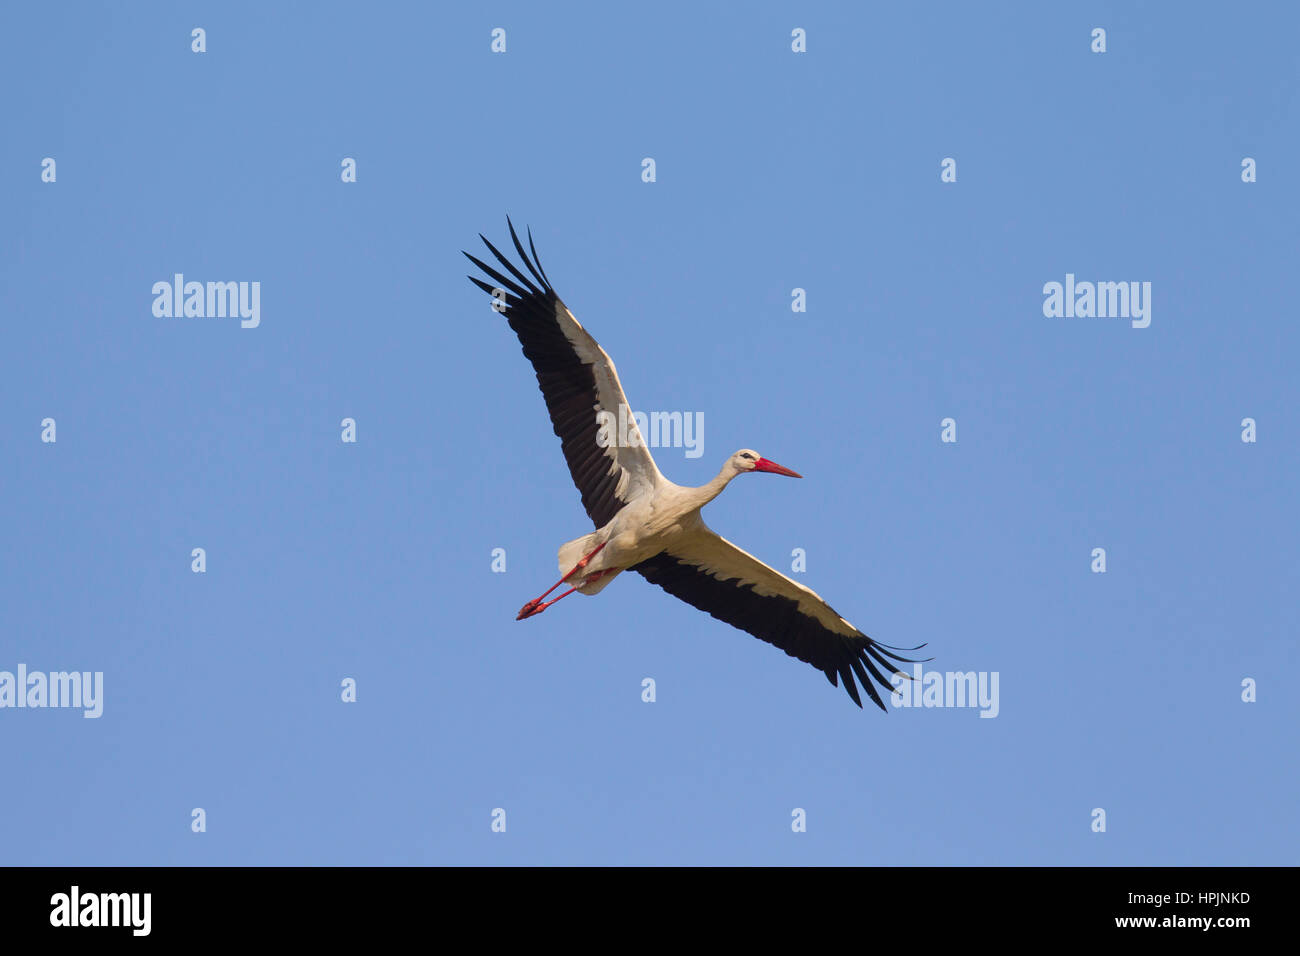 White stork (Ciconia ciconia) in flight against blue sky Stock Photo